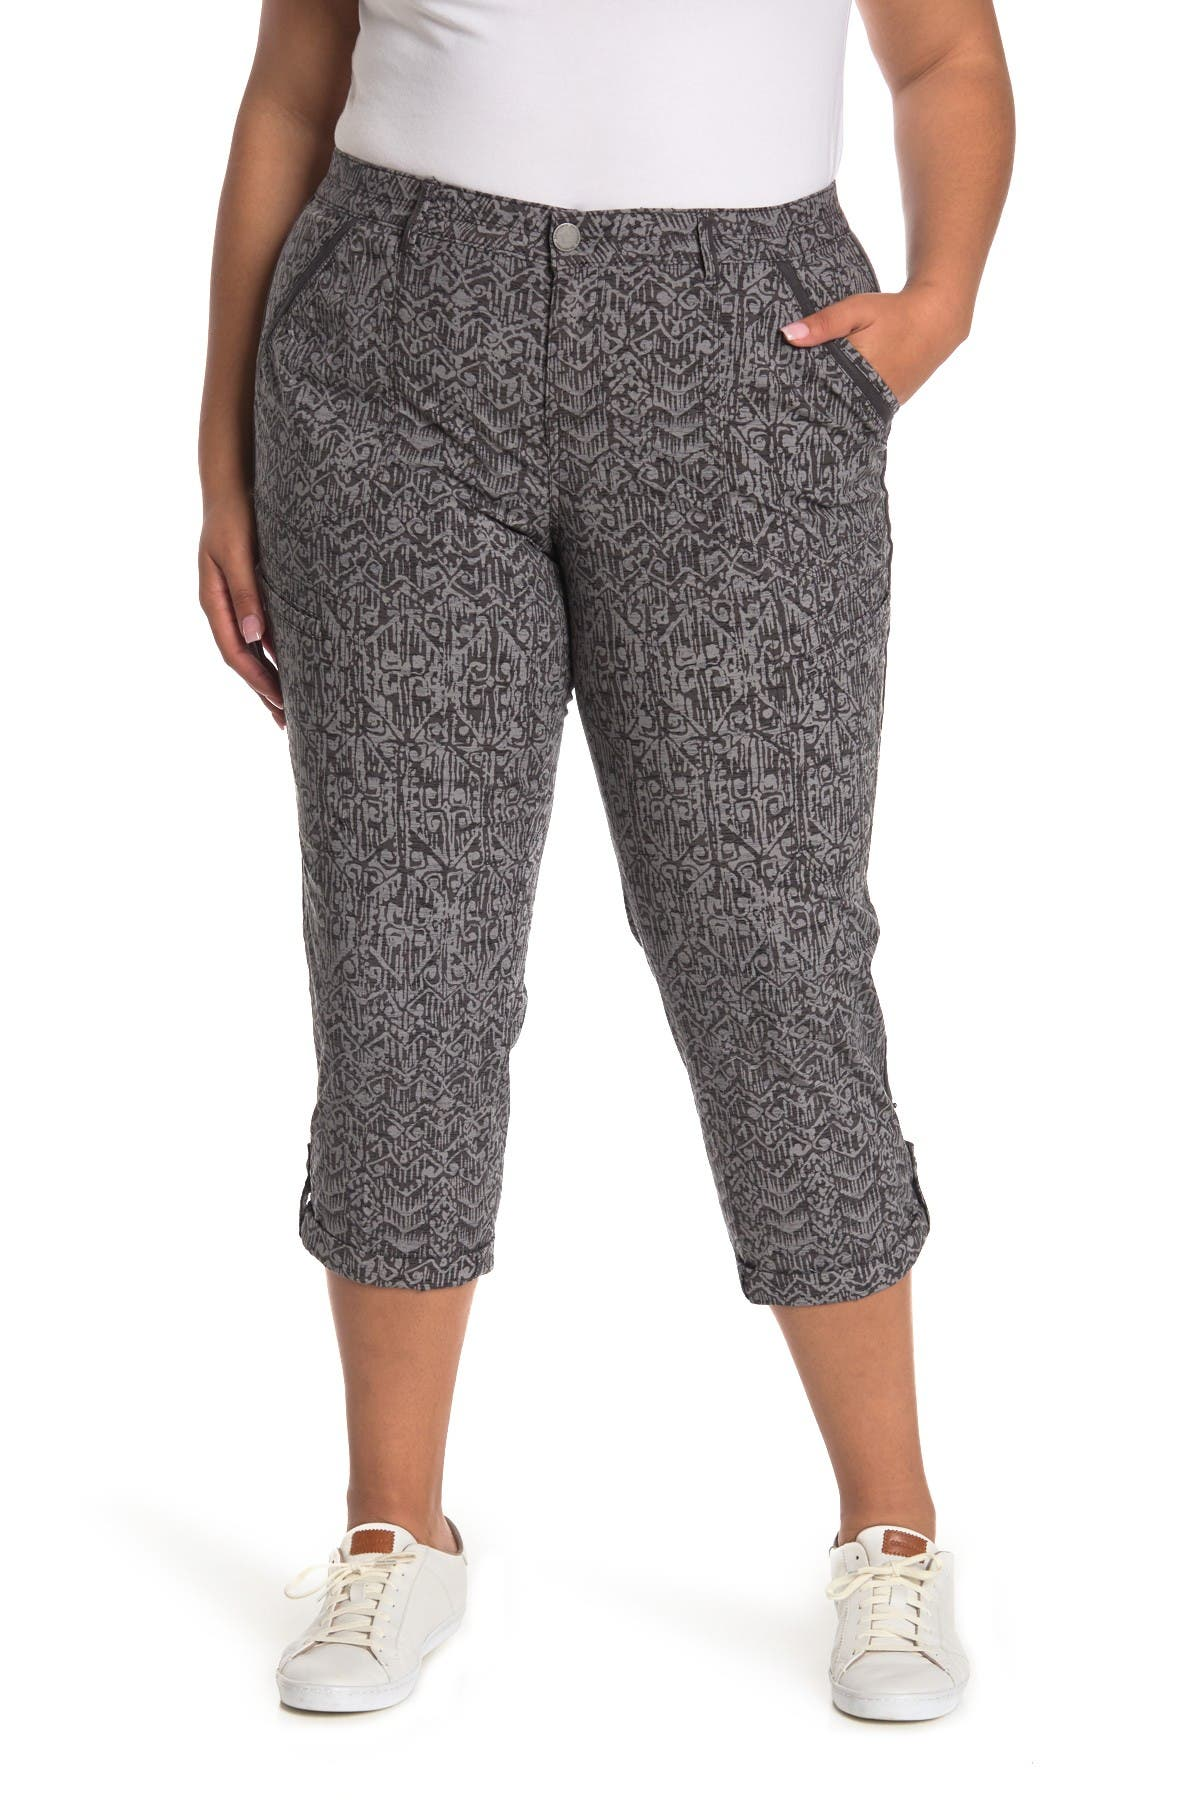 Image of Democracy Cuffed Printed Ankle Pants